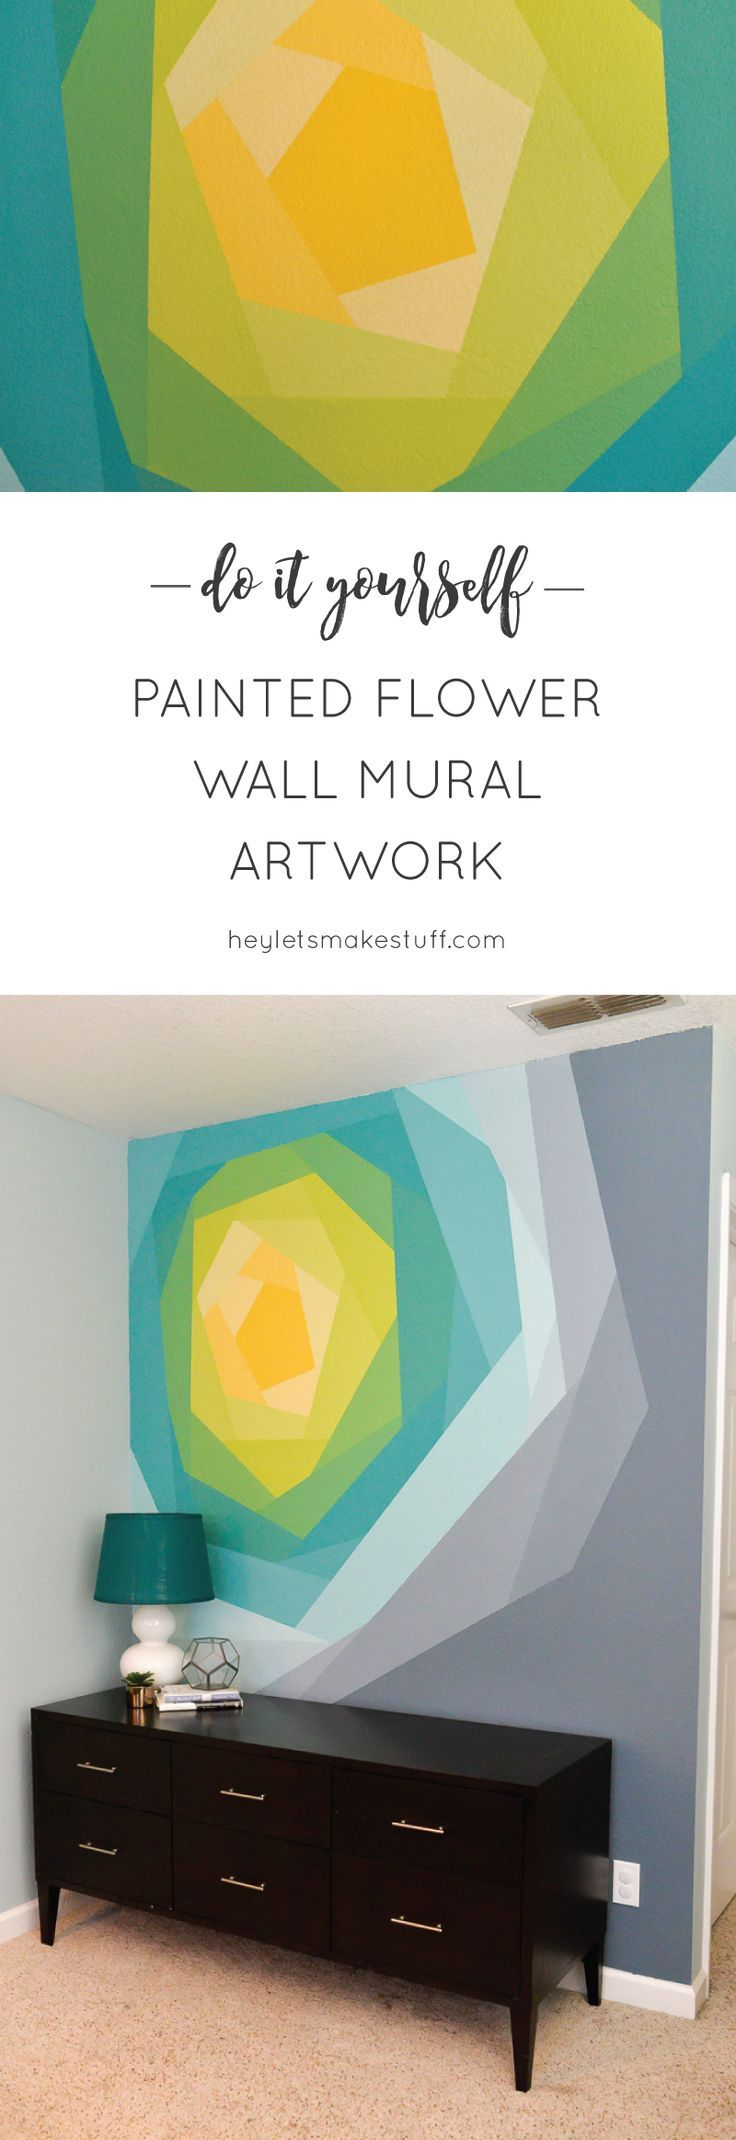 25 best painted wall murals ideas on pinterest wall murals painted flower wall mural artwork